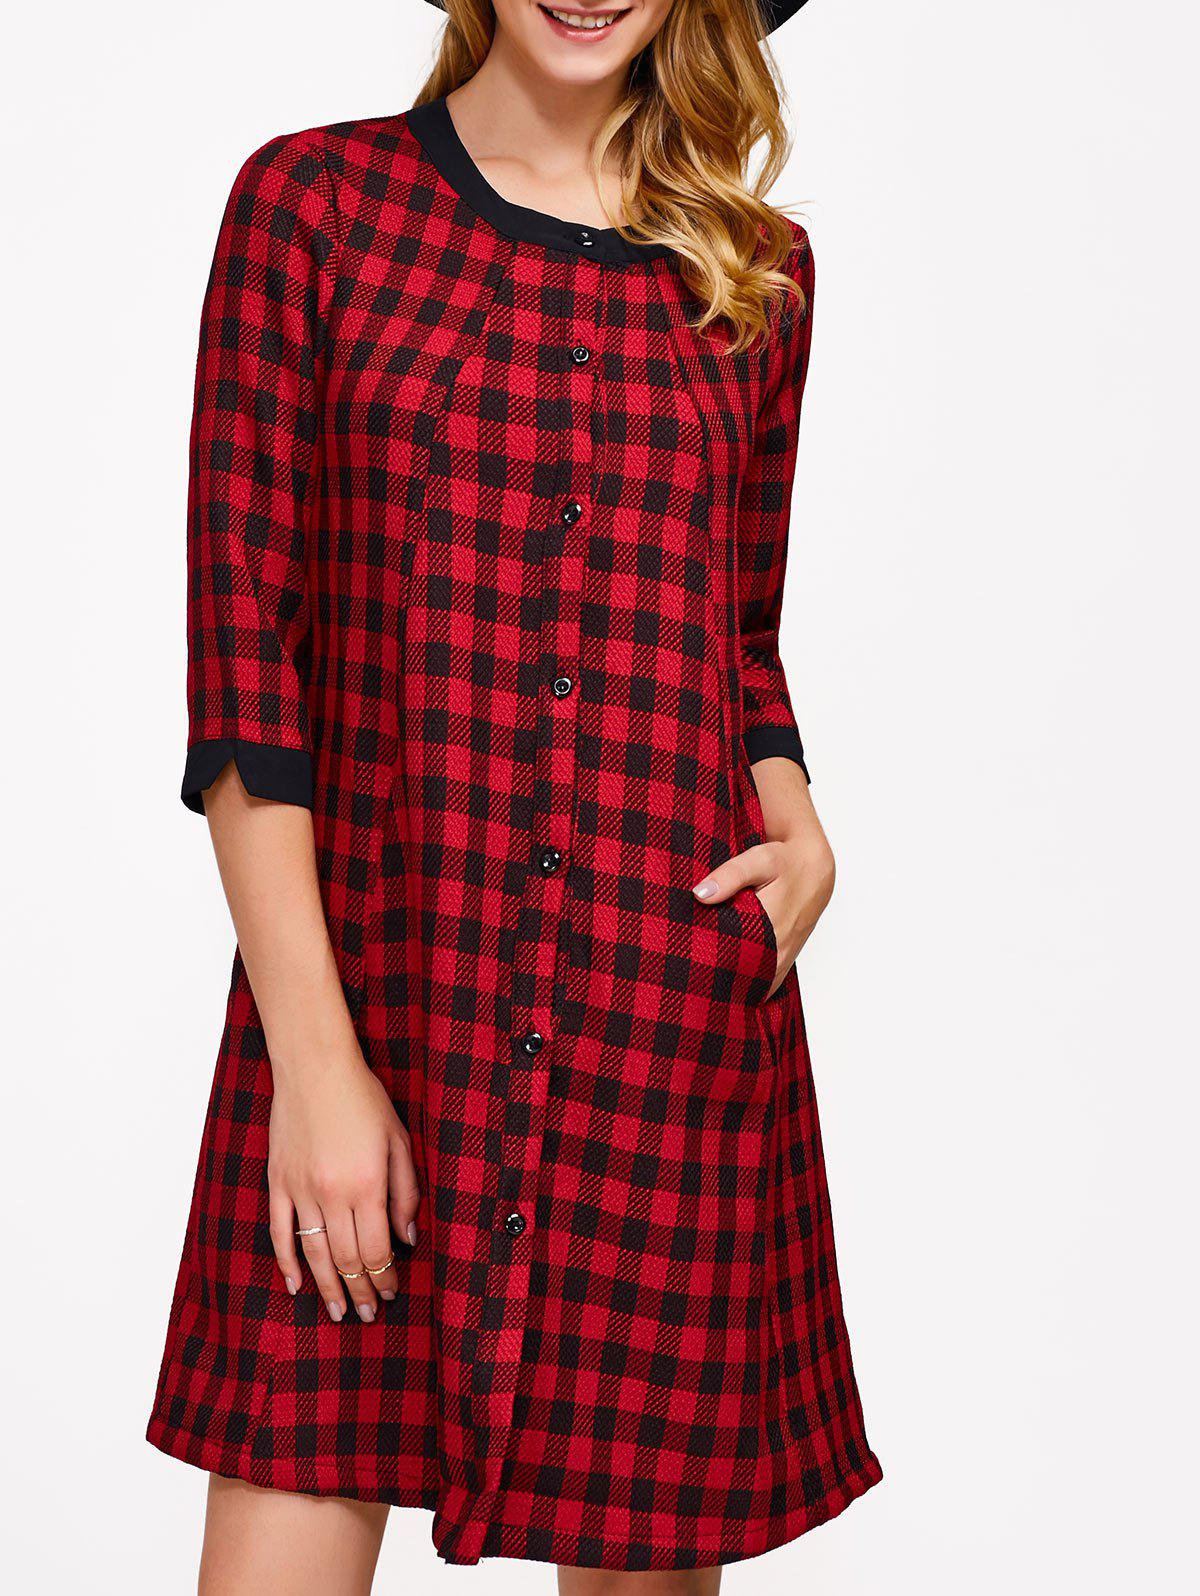 Checked Single-Breasted A-Line Dress - RED M